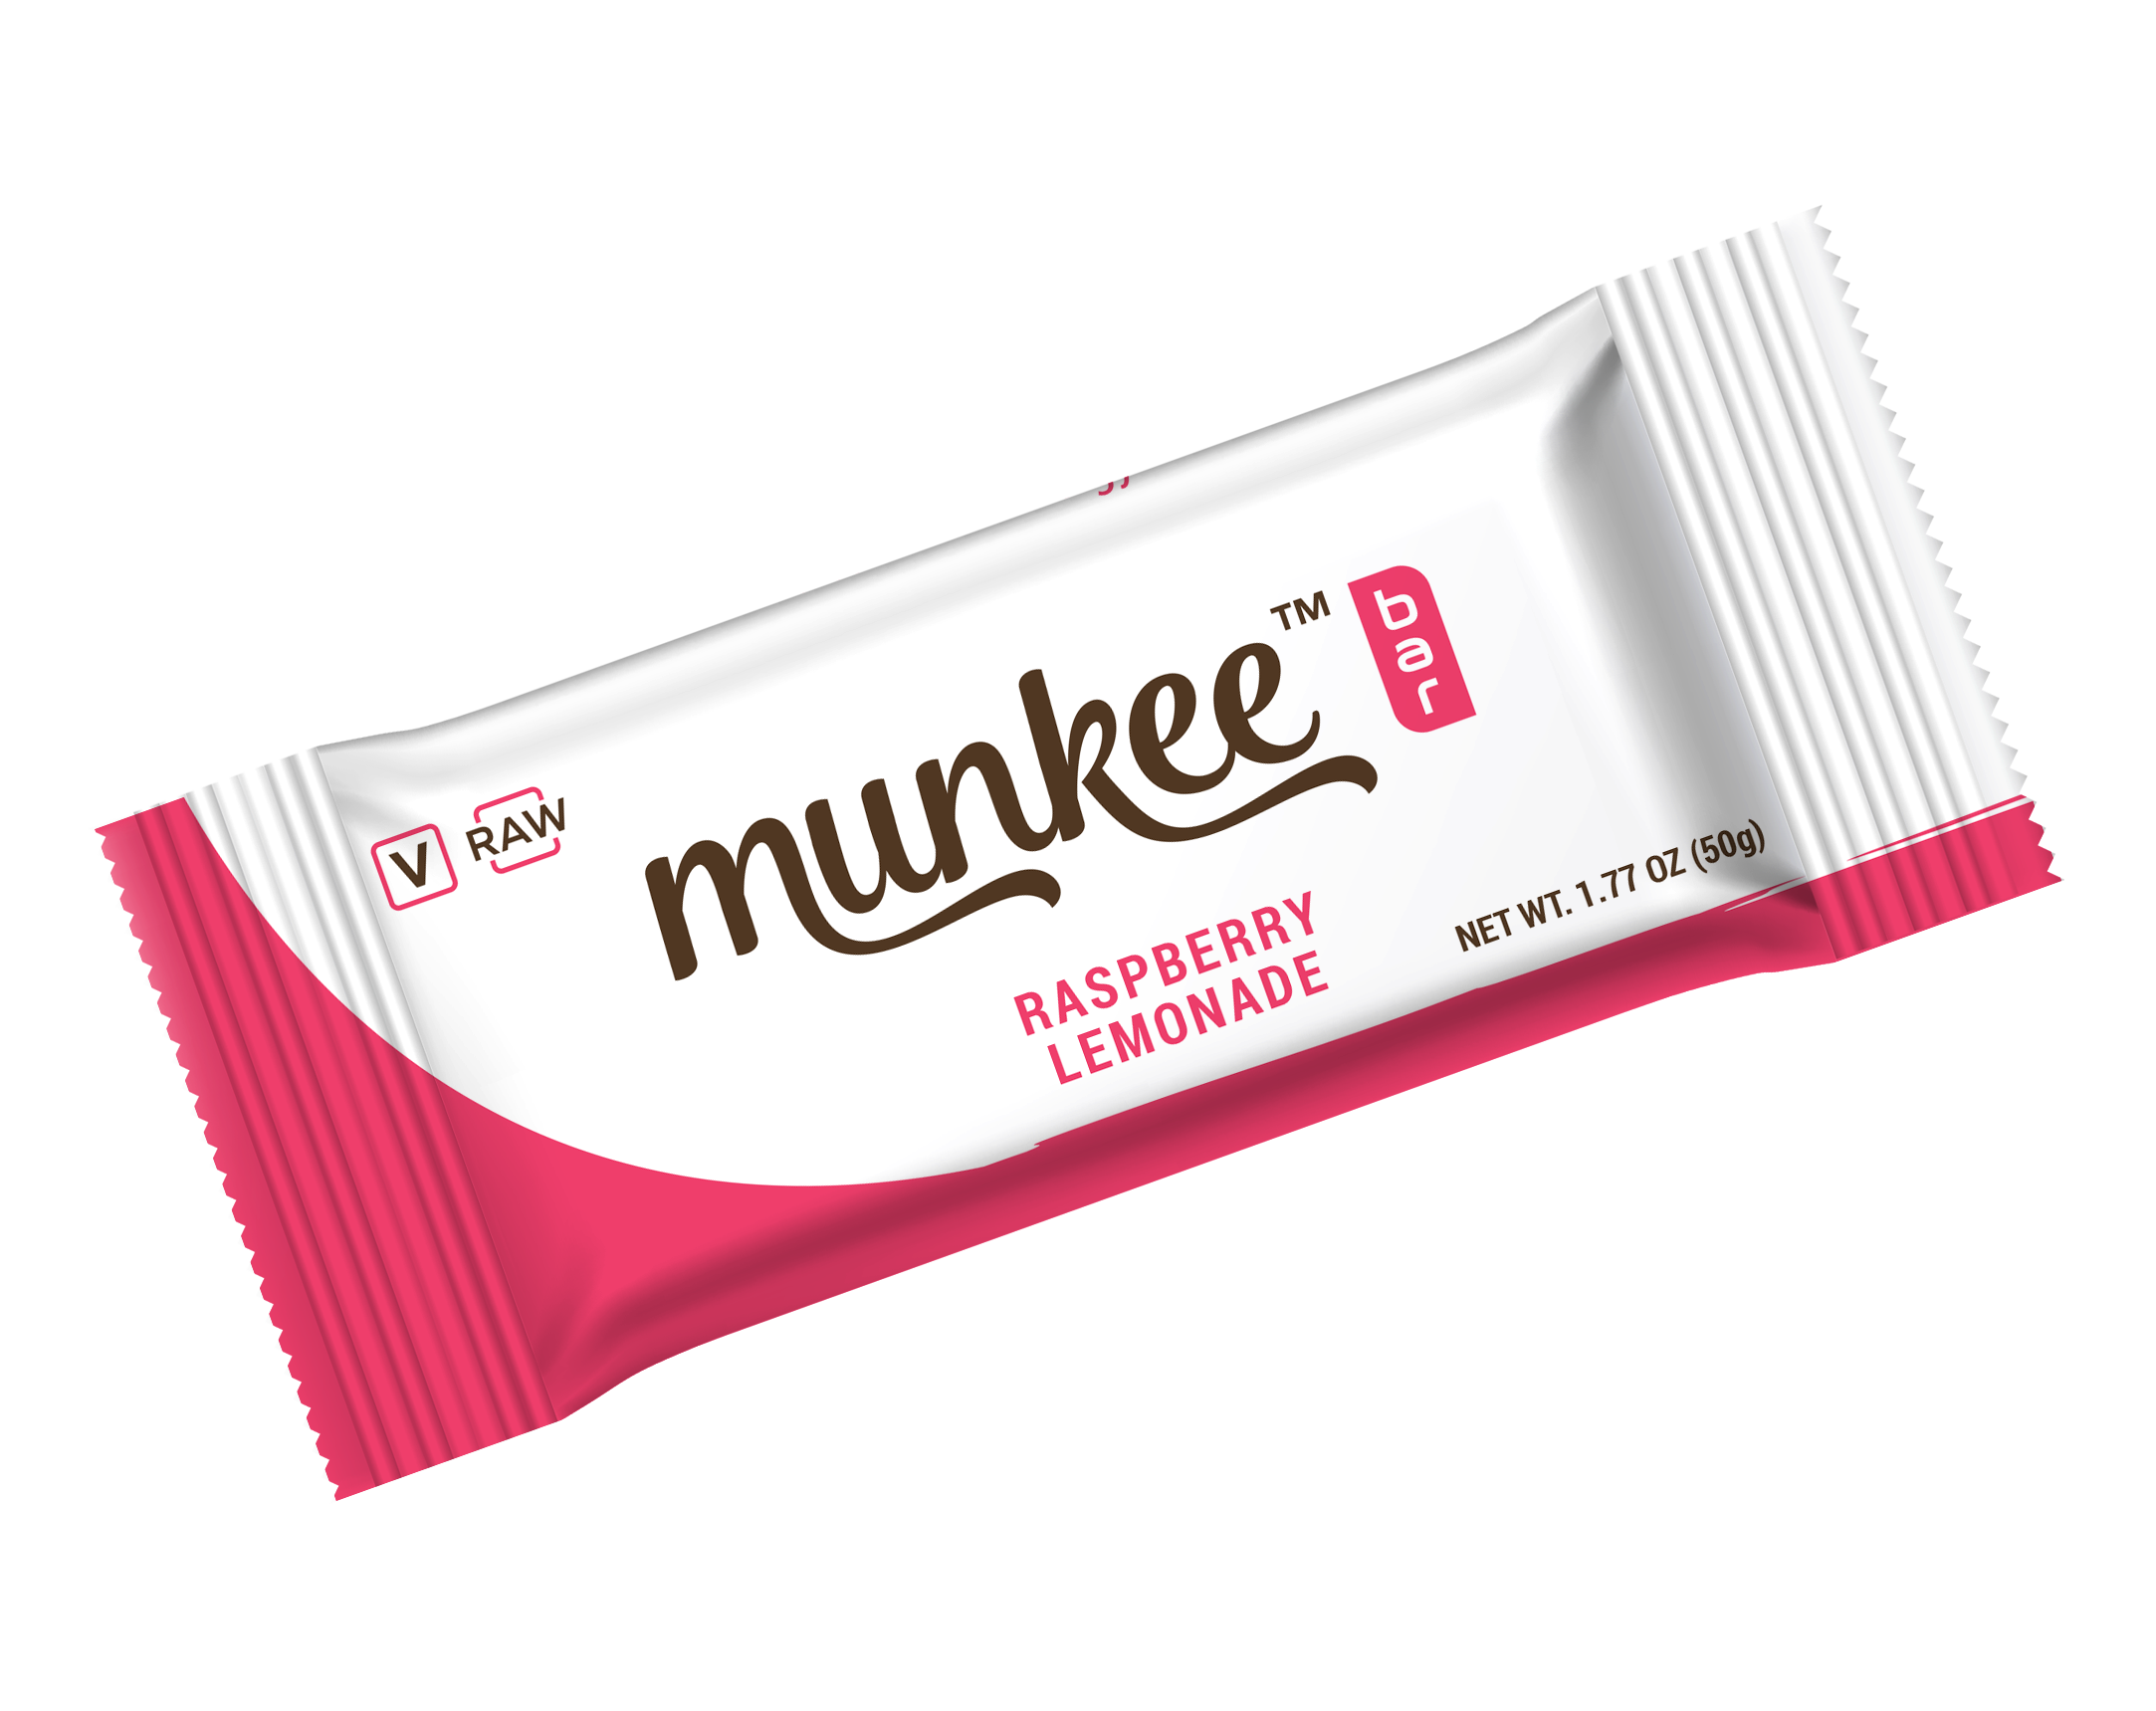 Munkee Bar Raspberry Lemonade